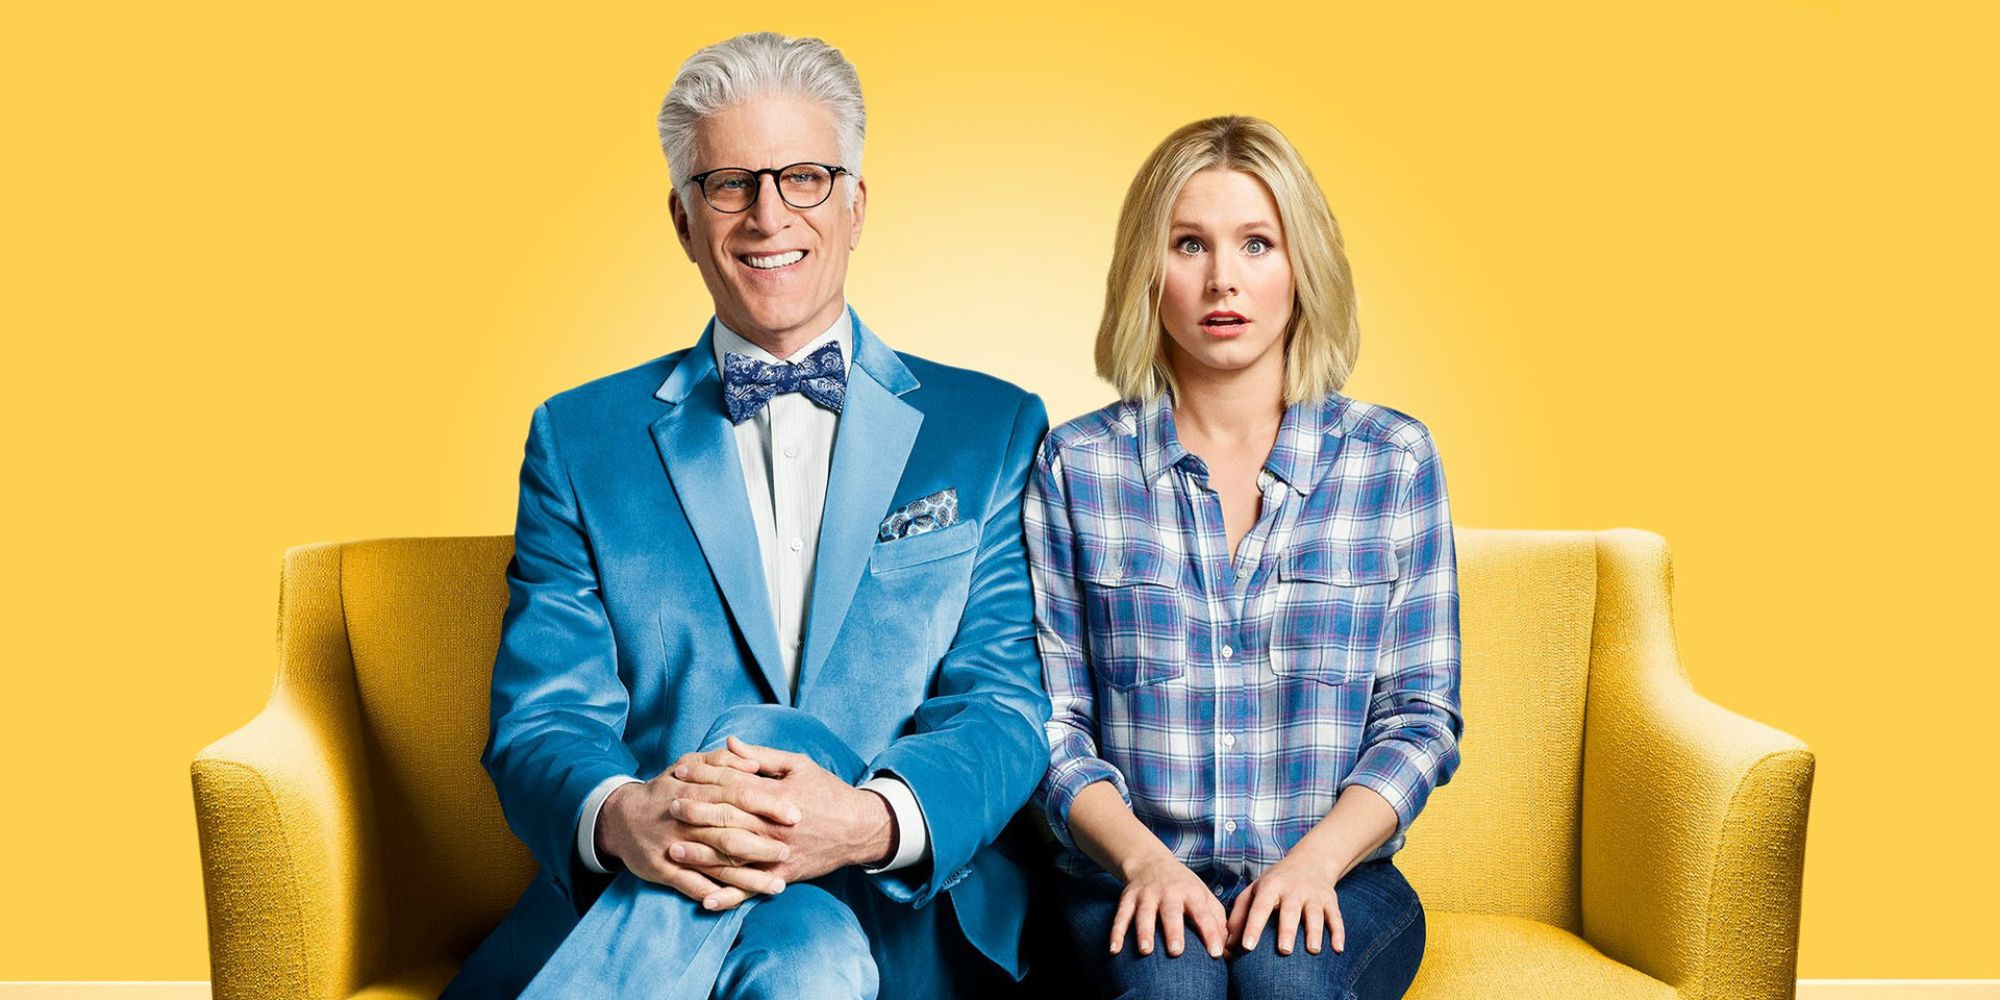 The Good Place Gets Season 4 Renewal